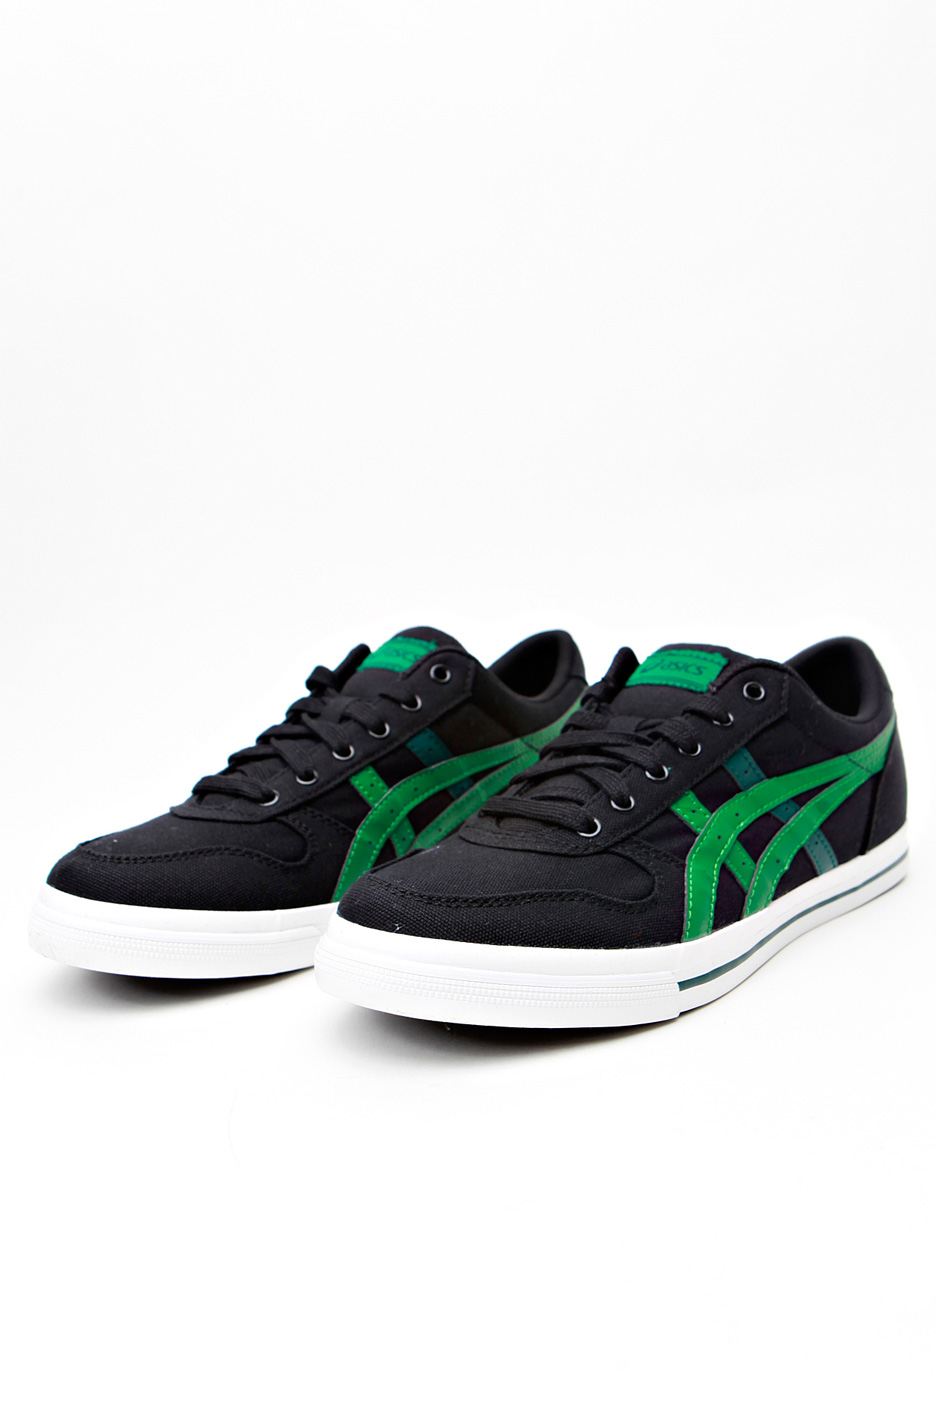 asics - aaron cv black  green - shoes